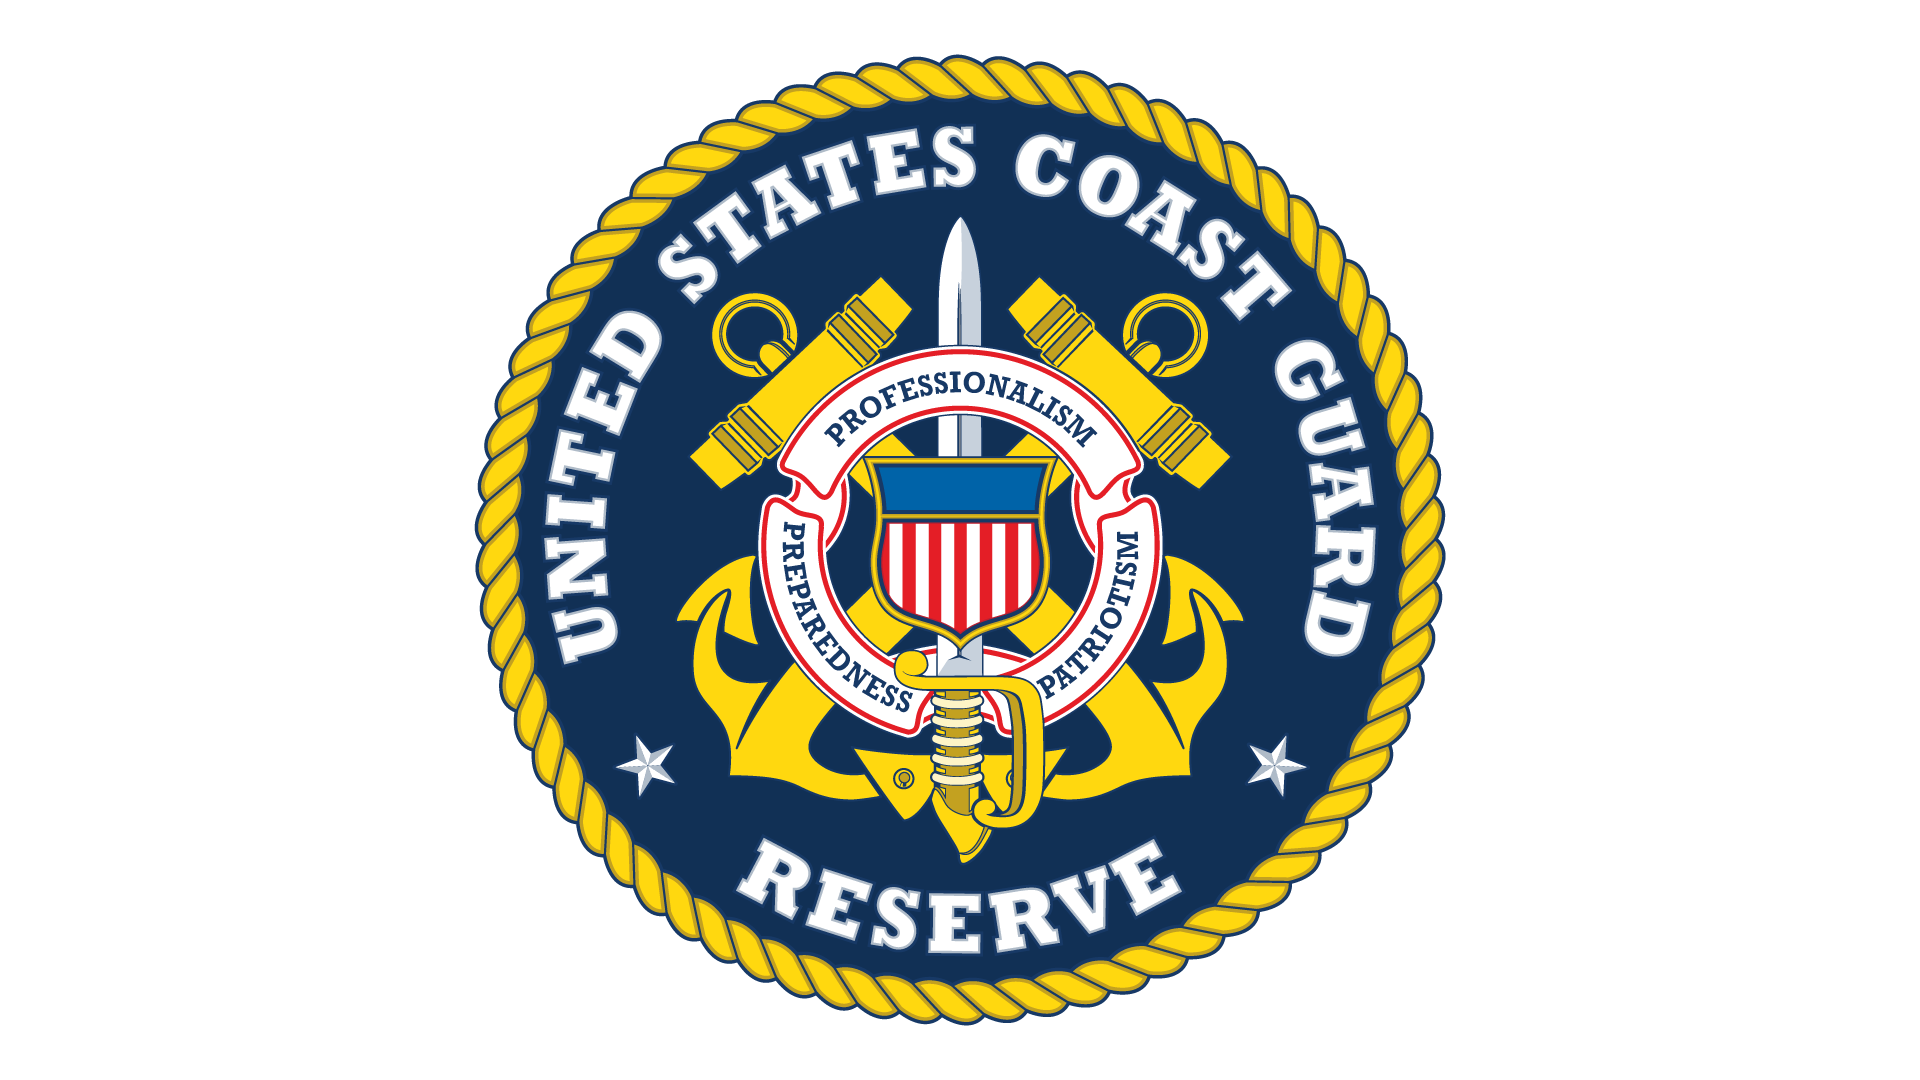 United States Coast Guard Reserve Rings the NYSE Opening Bell®